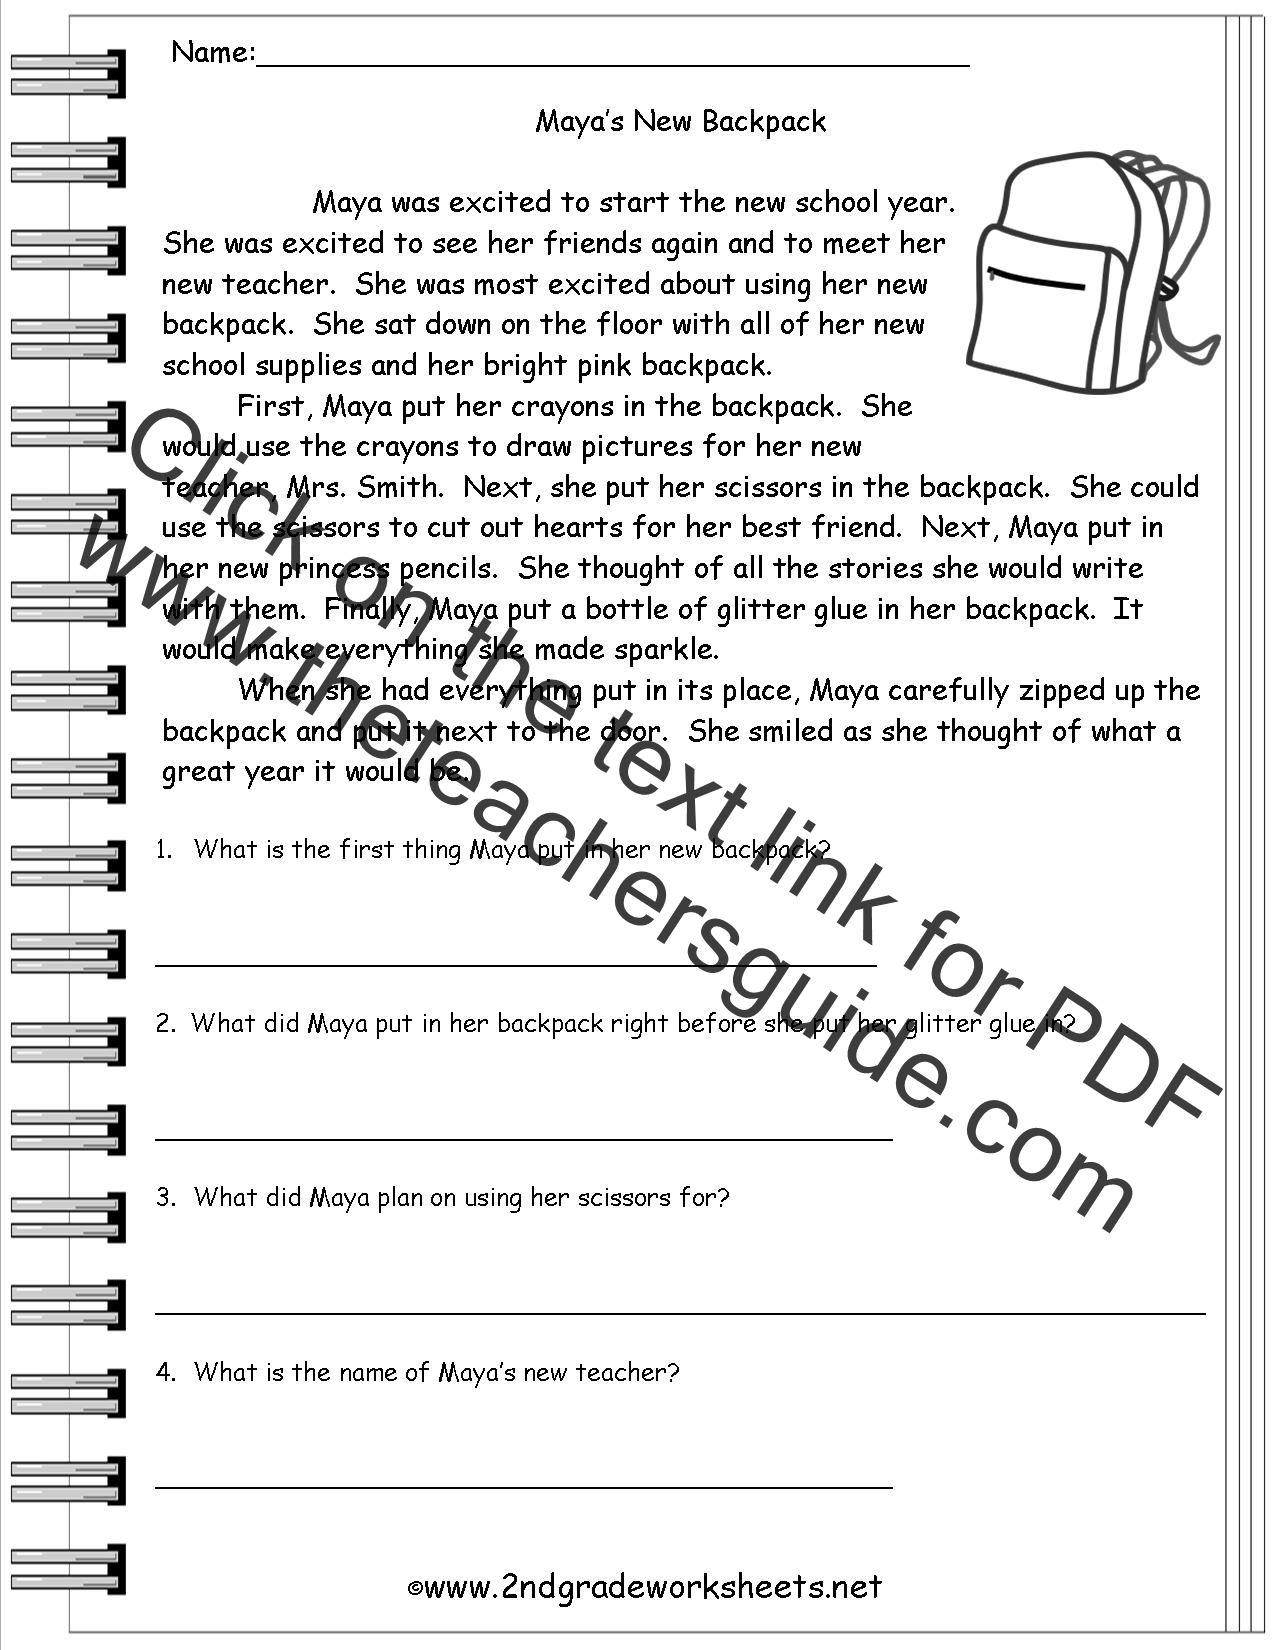 Worksheet Comprehension Passages For Grade 2 reading worksheeets literature worksheets